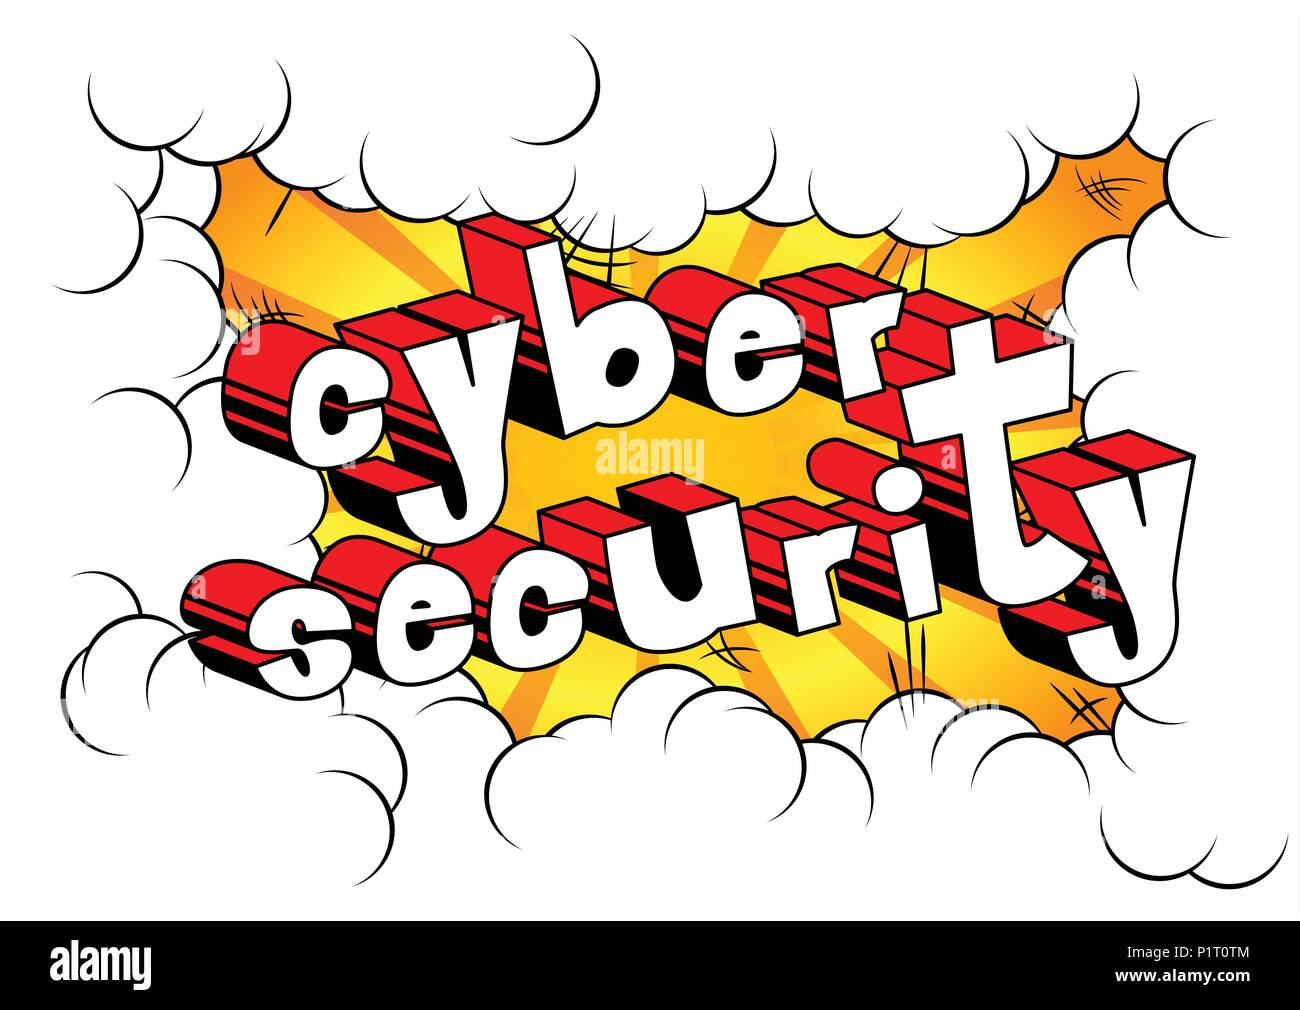 Cyber Security - Comic book style word on abstract background. Stock Vector